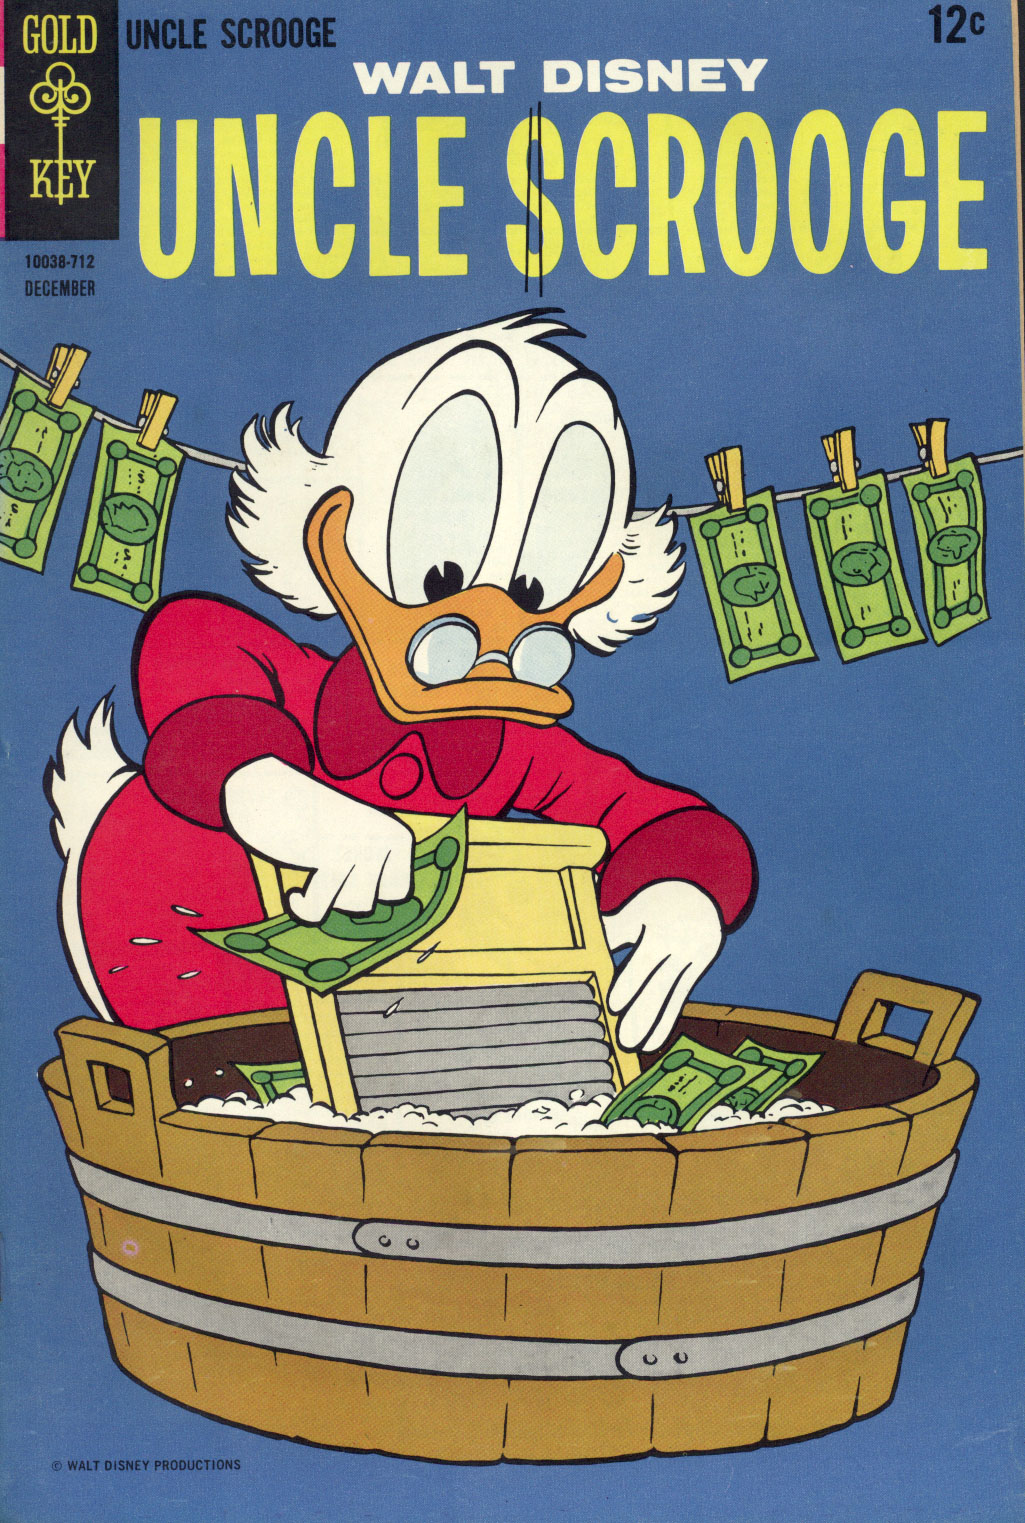 Uncle Scrooge (1953) Issue #72 #72 - English 1